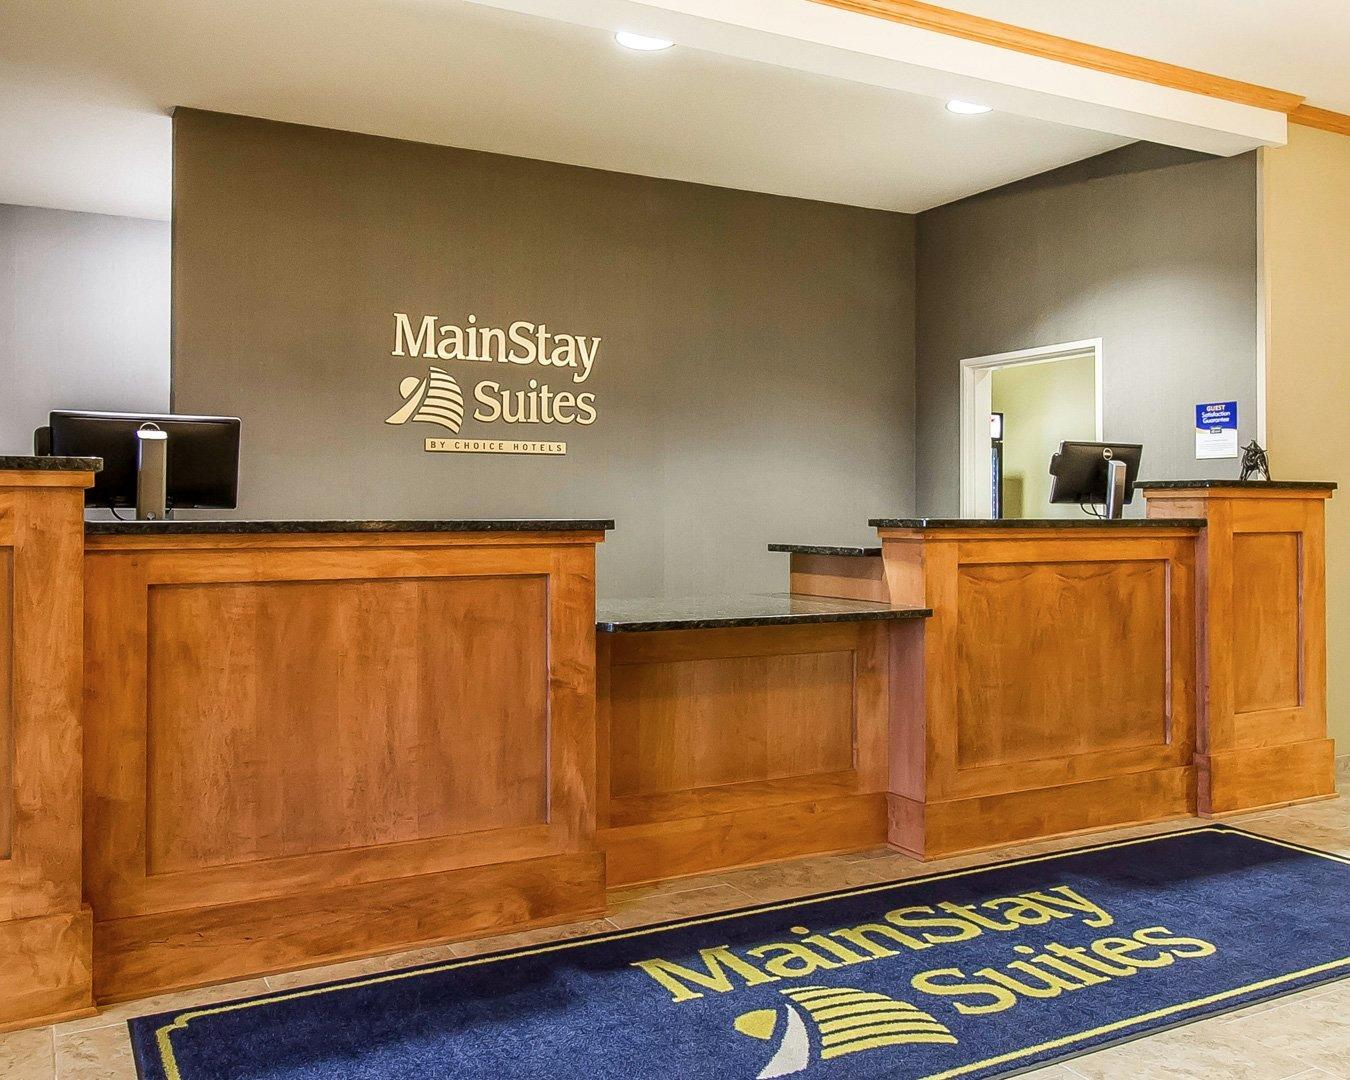 MainStay Suites Stanley image 1